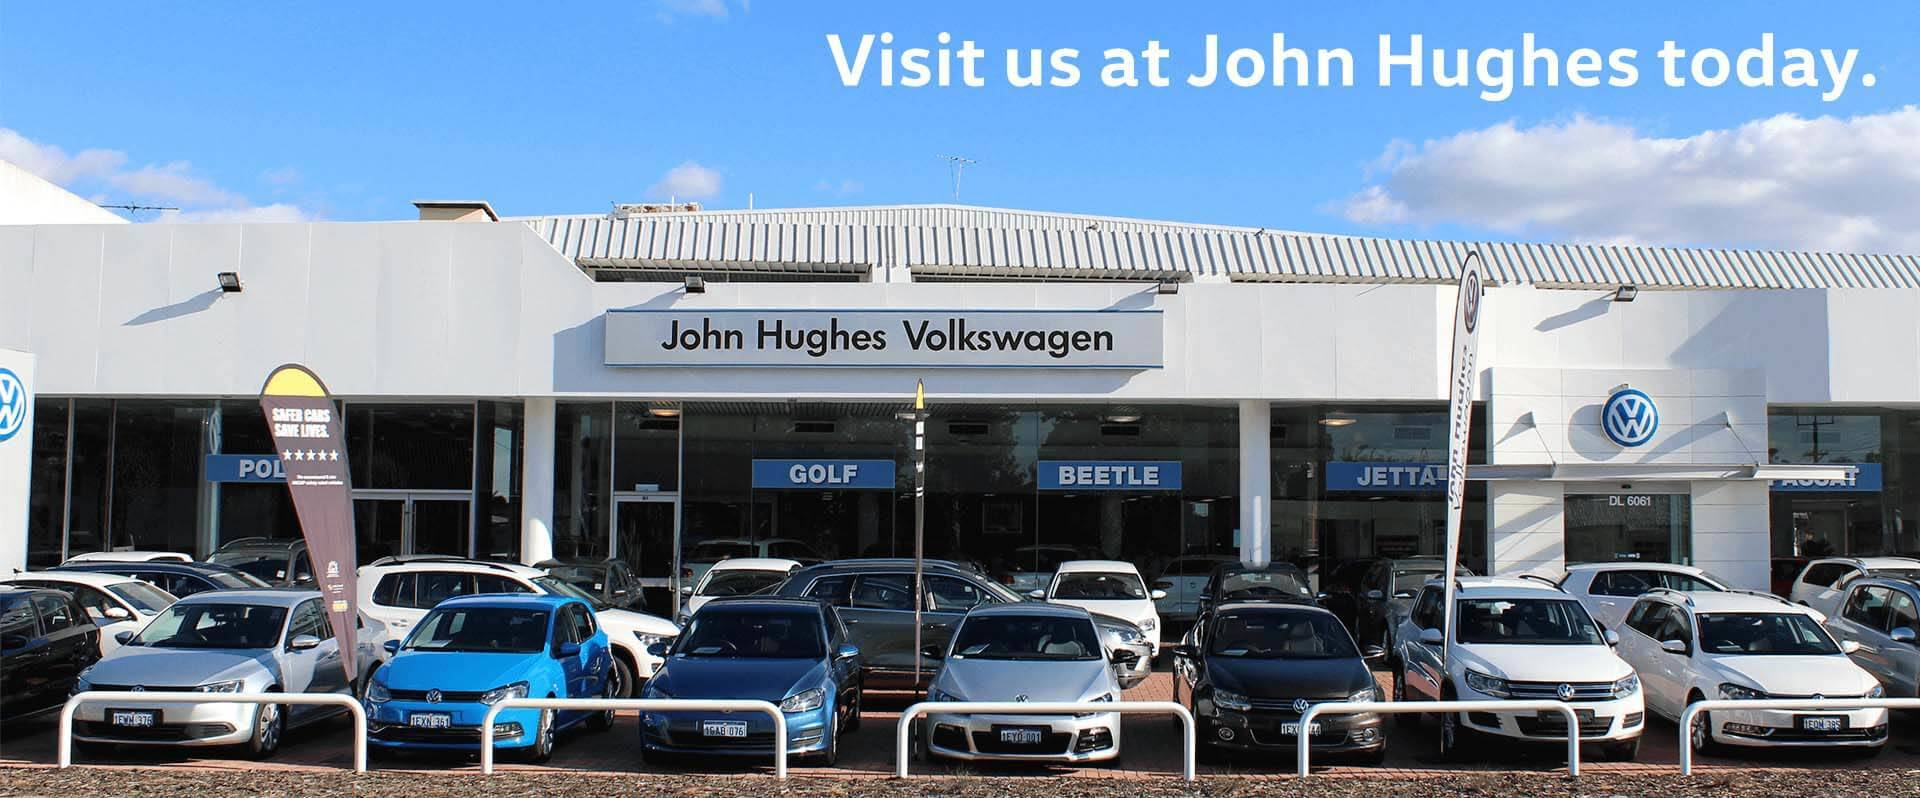 John Hughes Volkswagen Dealership